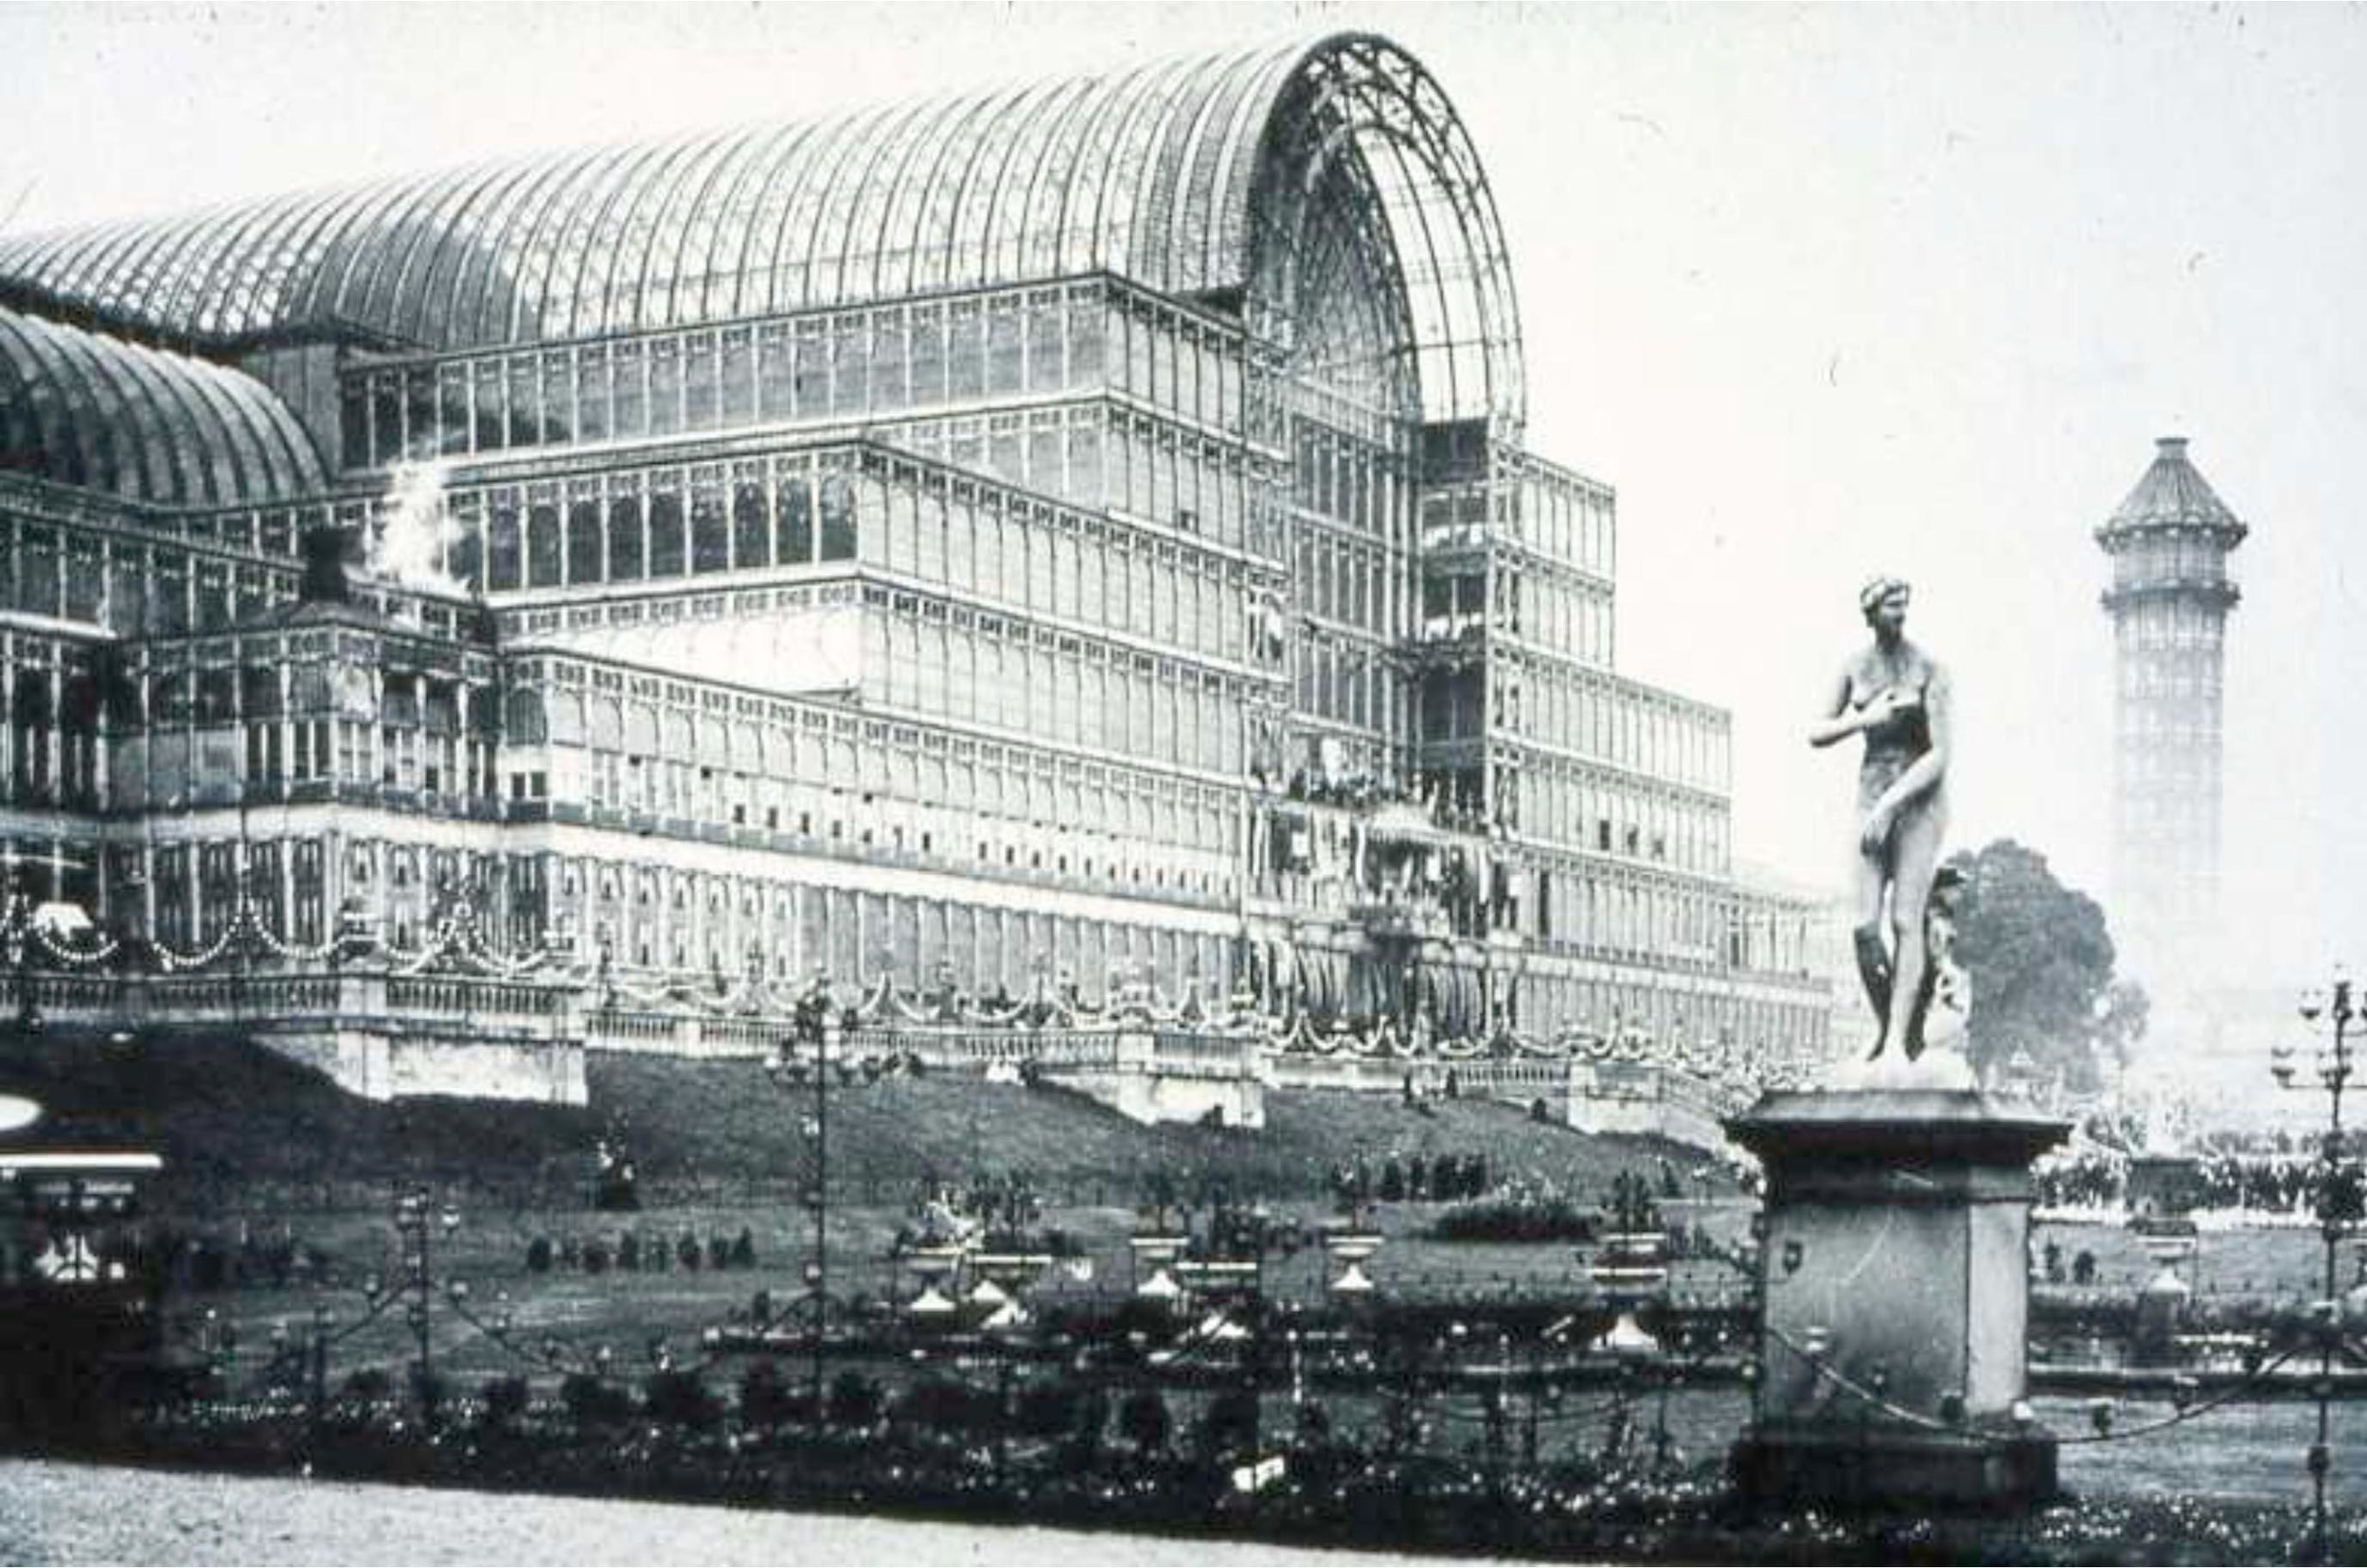 The Crystal Palace, London. The Crystal Palace was a cast-iron and plate-glass building originally erected in Hyde Park, London, England, to house the Great Exhibition of 1851.